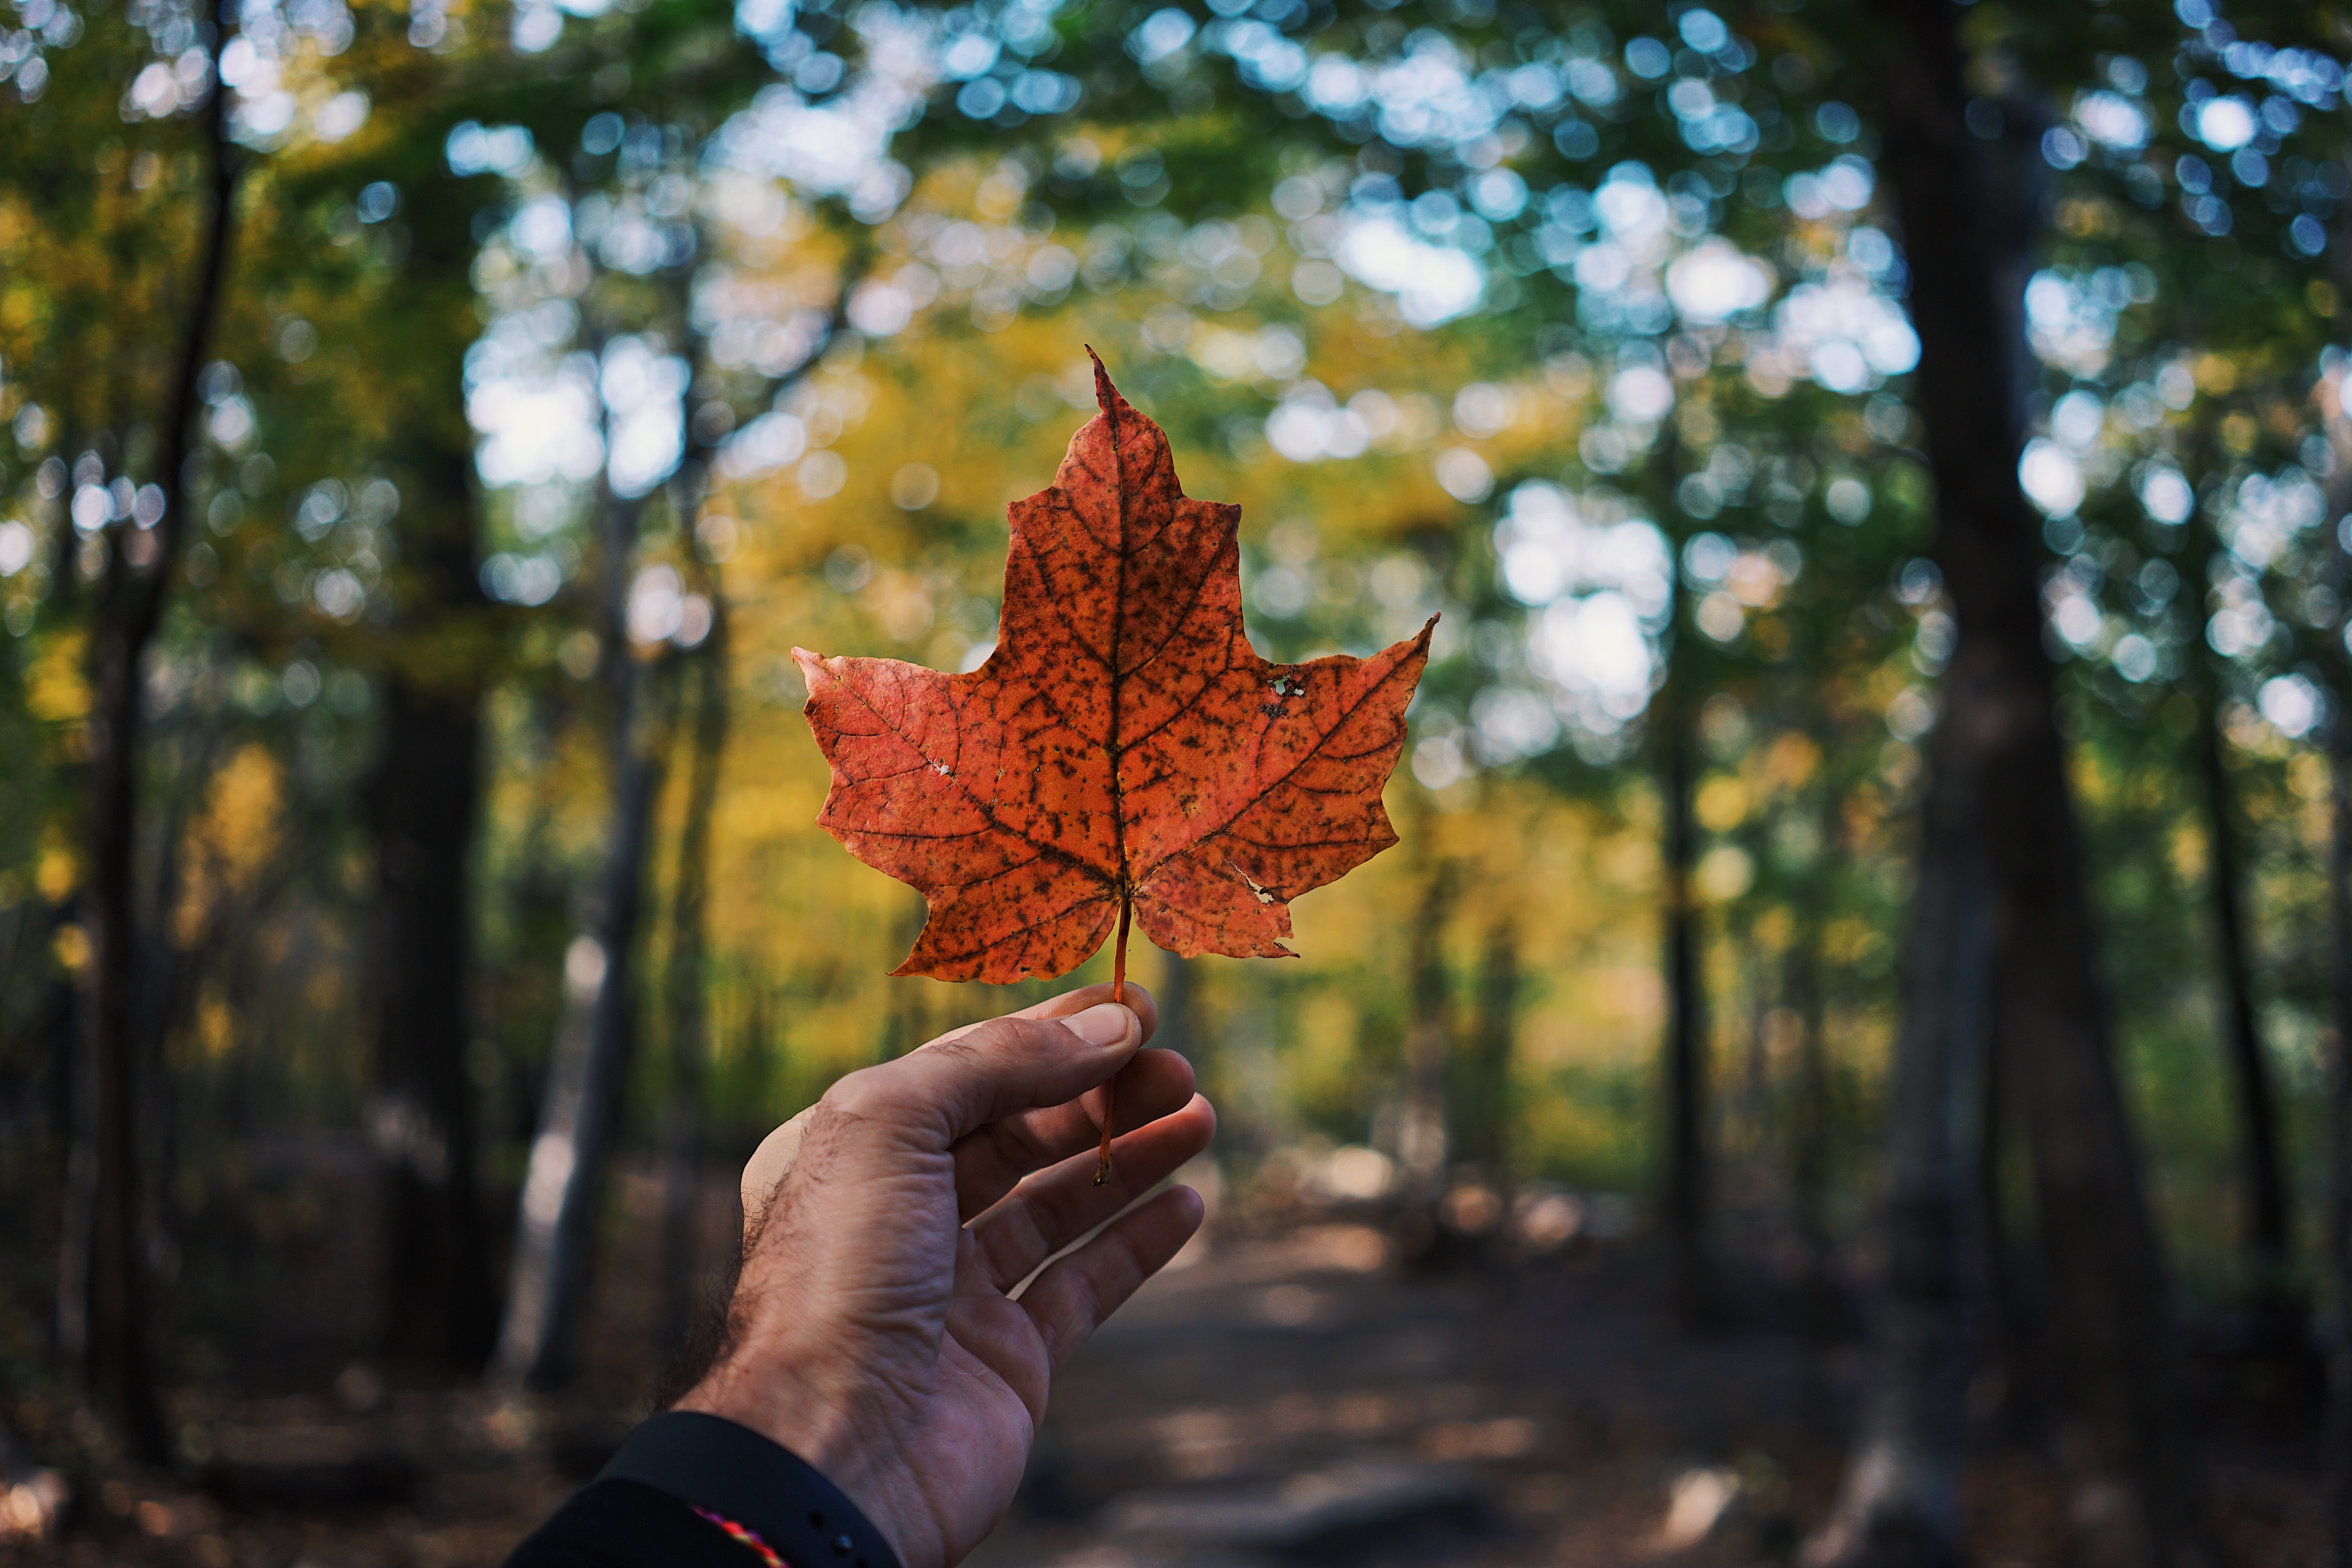 141749 download wallpaper Nature, Sheet, Leaf, Maple, Hand, Autumn screensavers and pictures for free